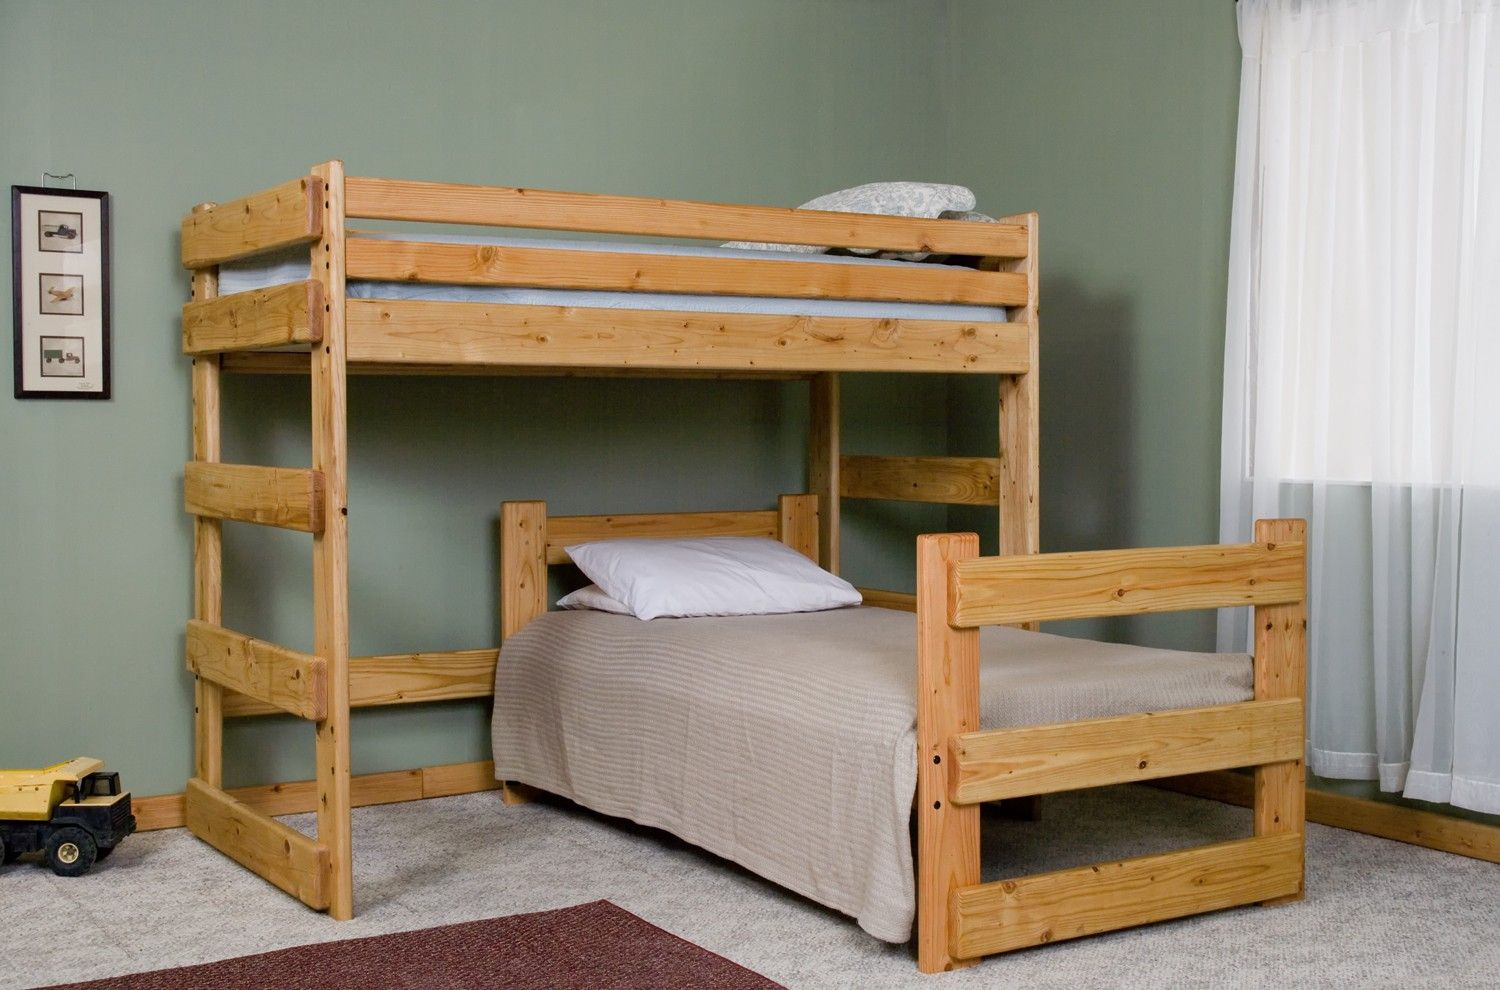 t shaped bunk beds - Google Search | L shaped bunk beds, Bunk bed ...